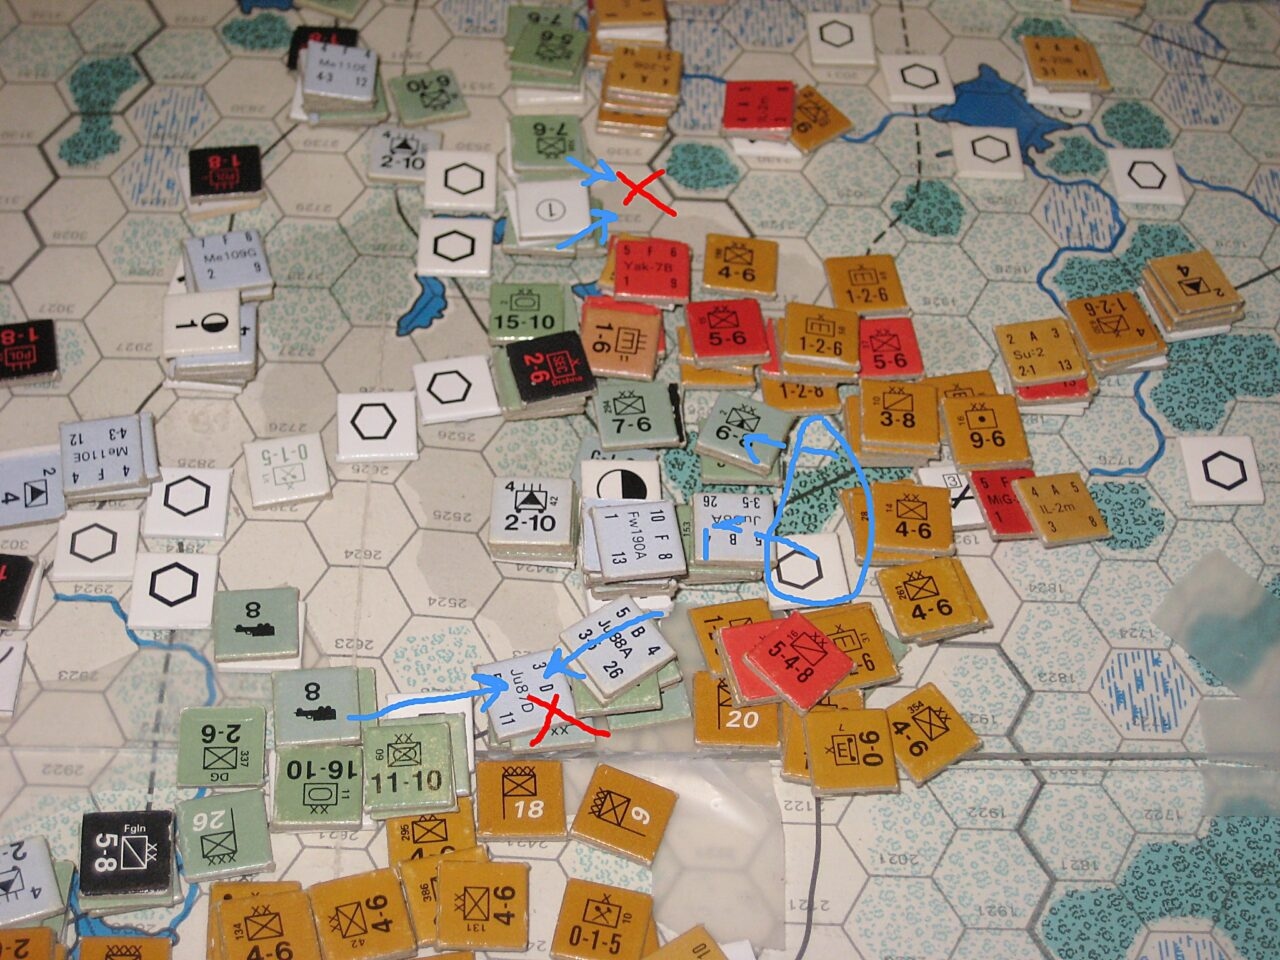 Retreat in the North and counterattacks